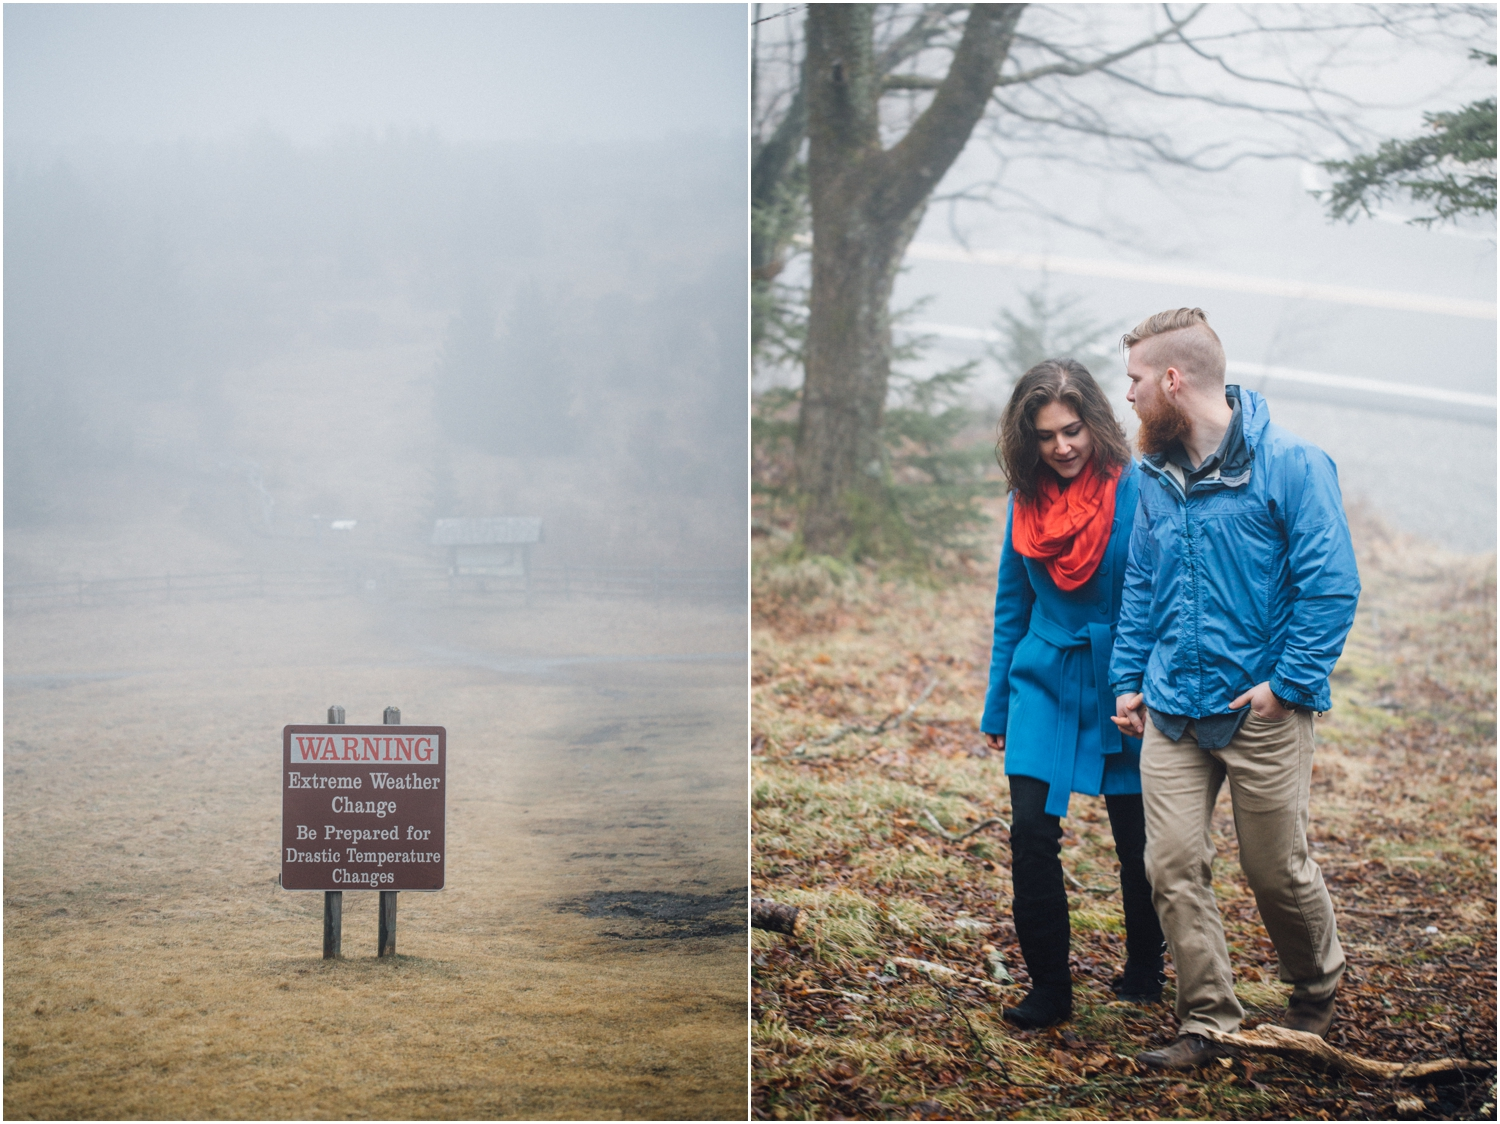 katy-sergent-photography-grayson-highlands-engagement-session-mouth-of-wilson-virginia-damascus-appalachian-trail-tennessee-wedding-elopement_0012.jpg